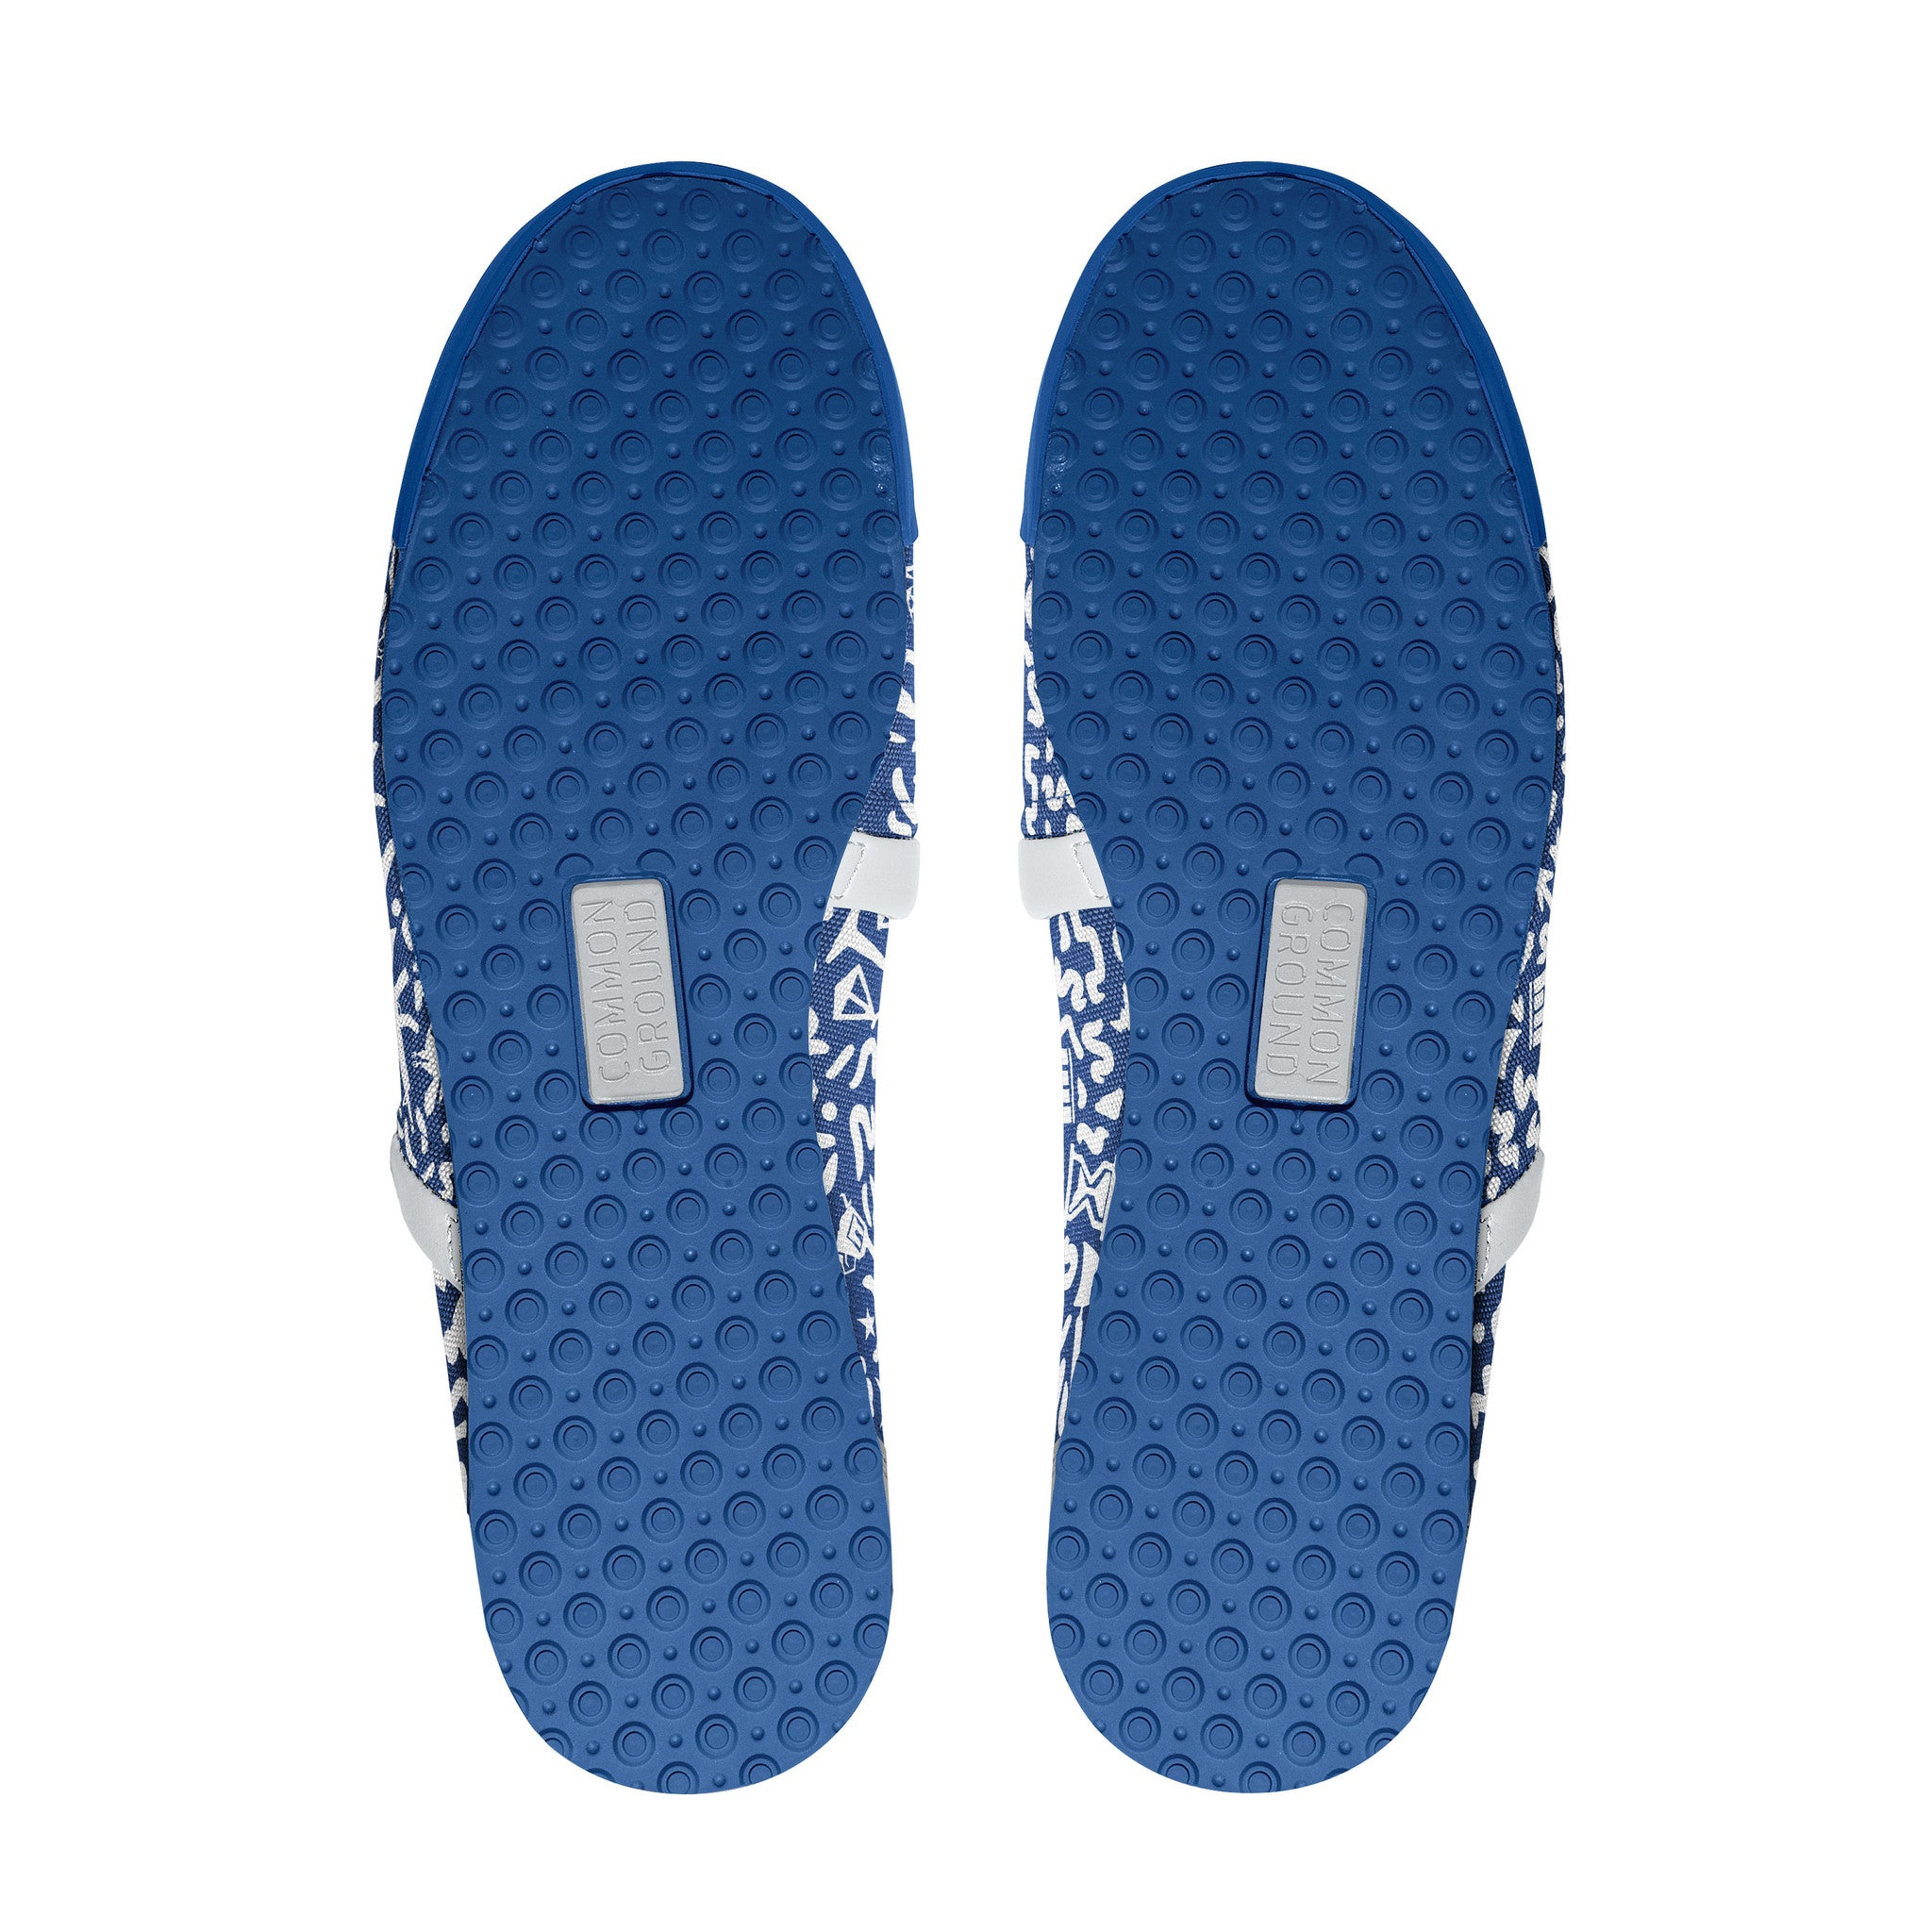 Strong_Blue - Common Ground Footwear Shoes Bottom View